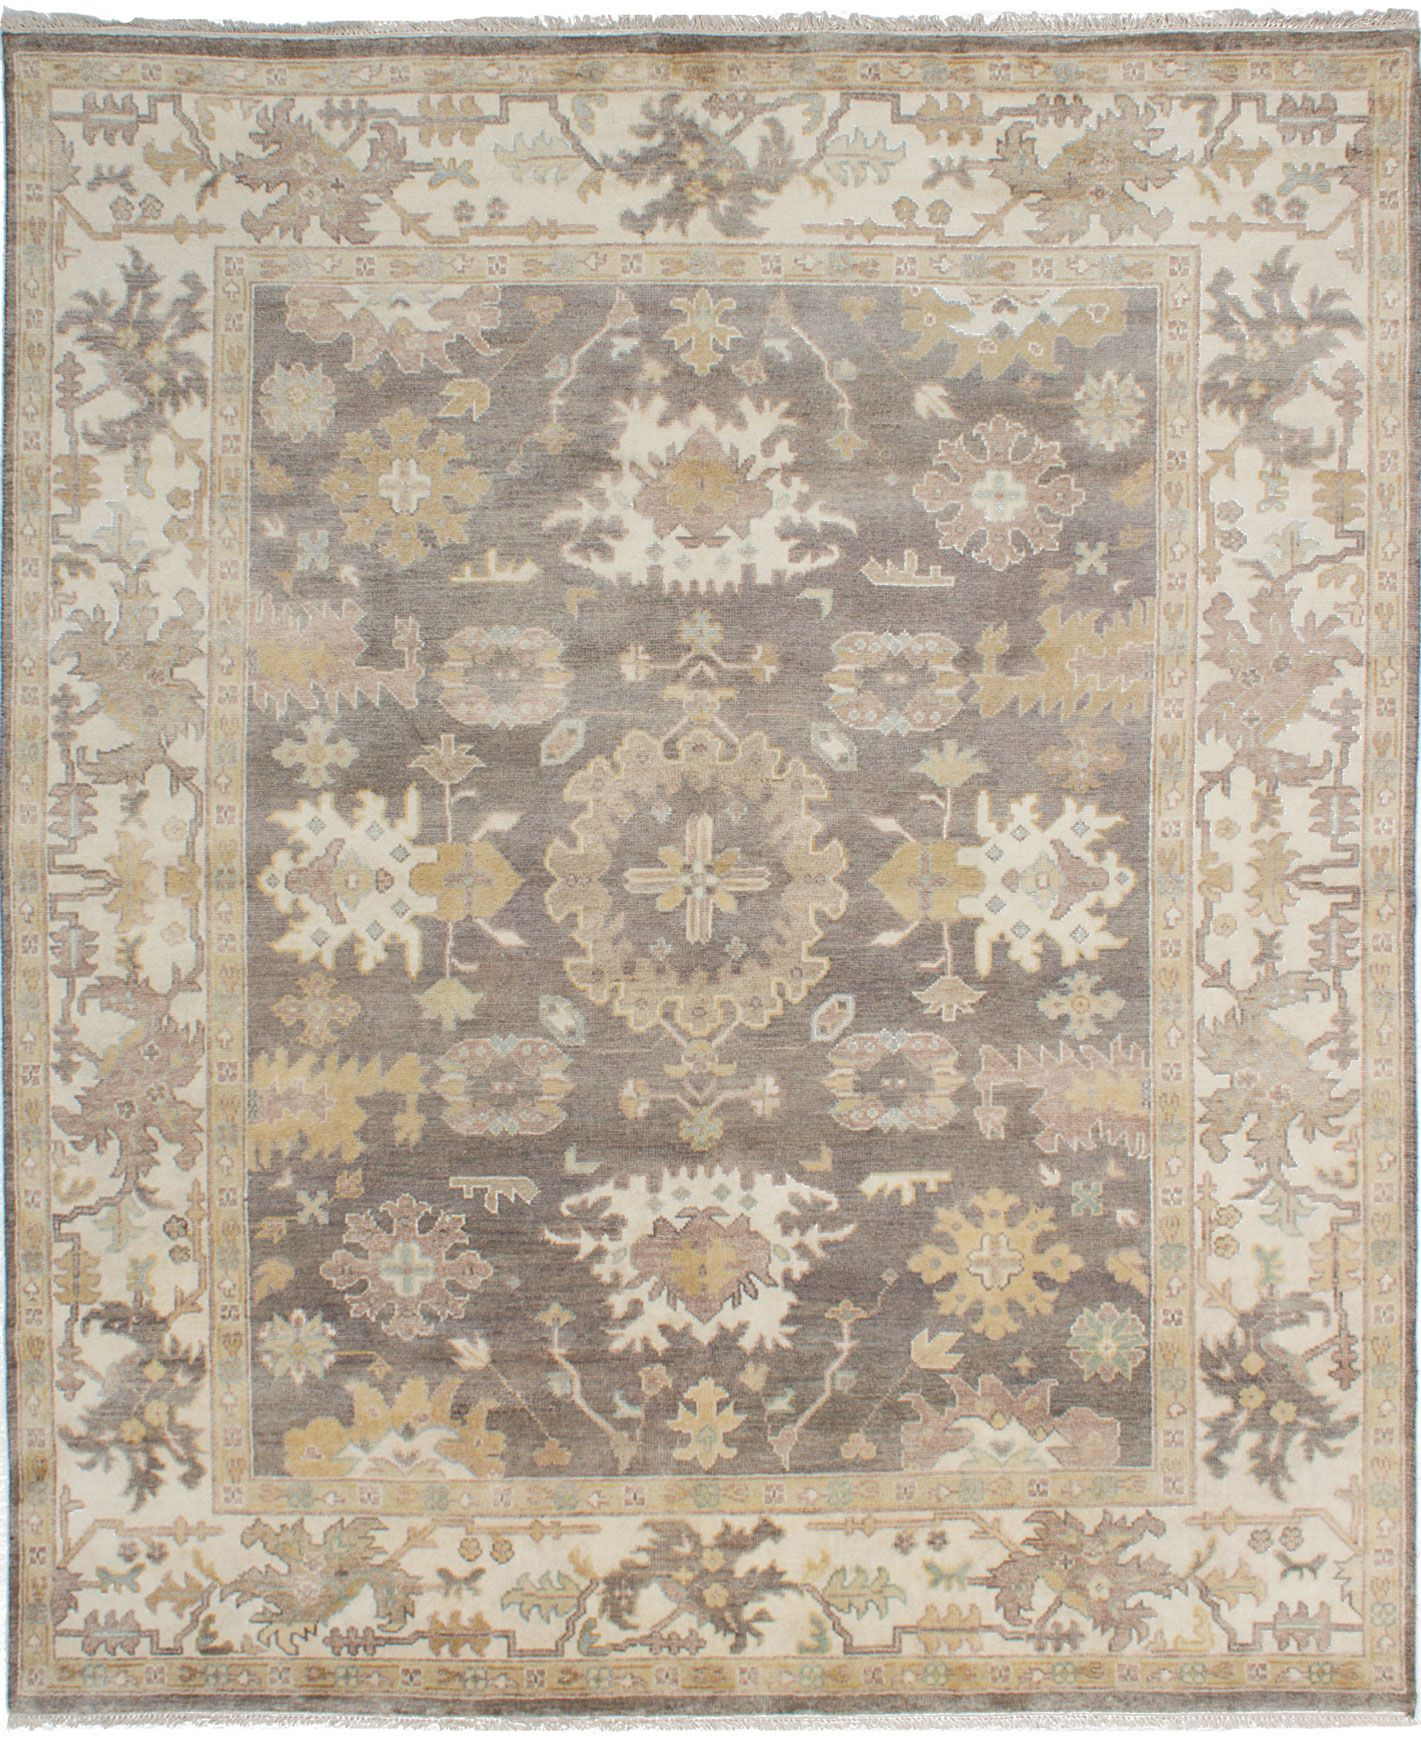 Hand Knotted Indian Rugs Prized For Their Unique Colors Designs And Superior Craftmanship